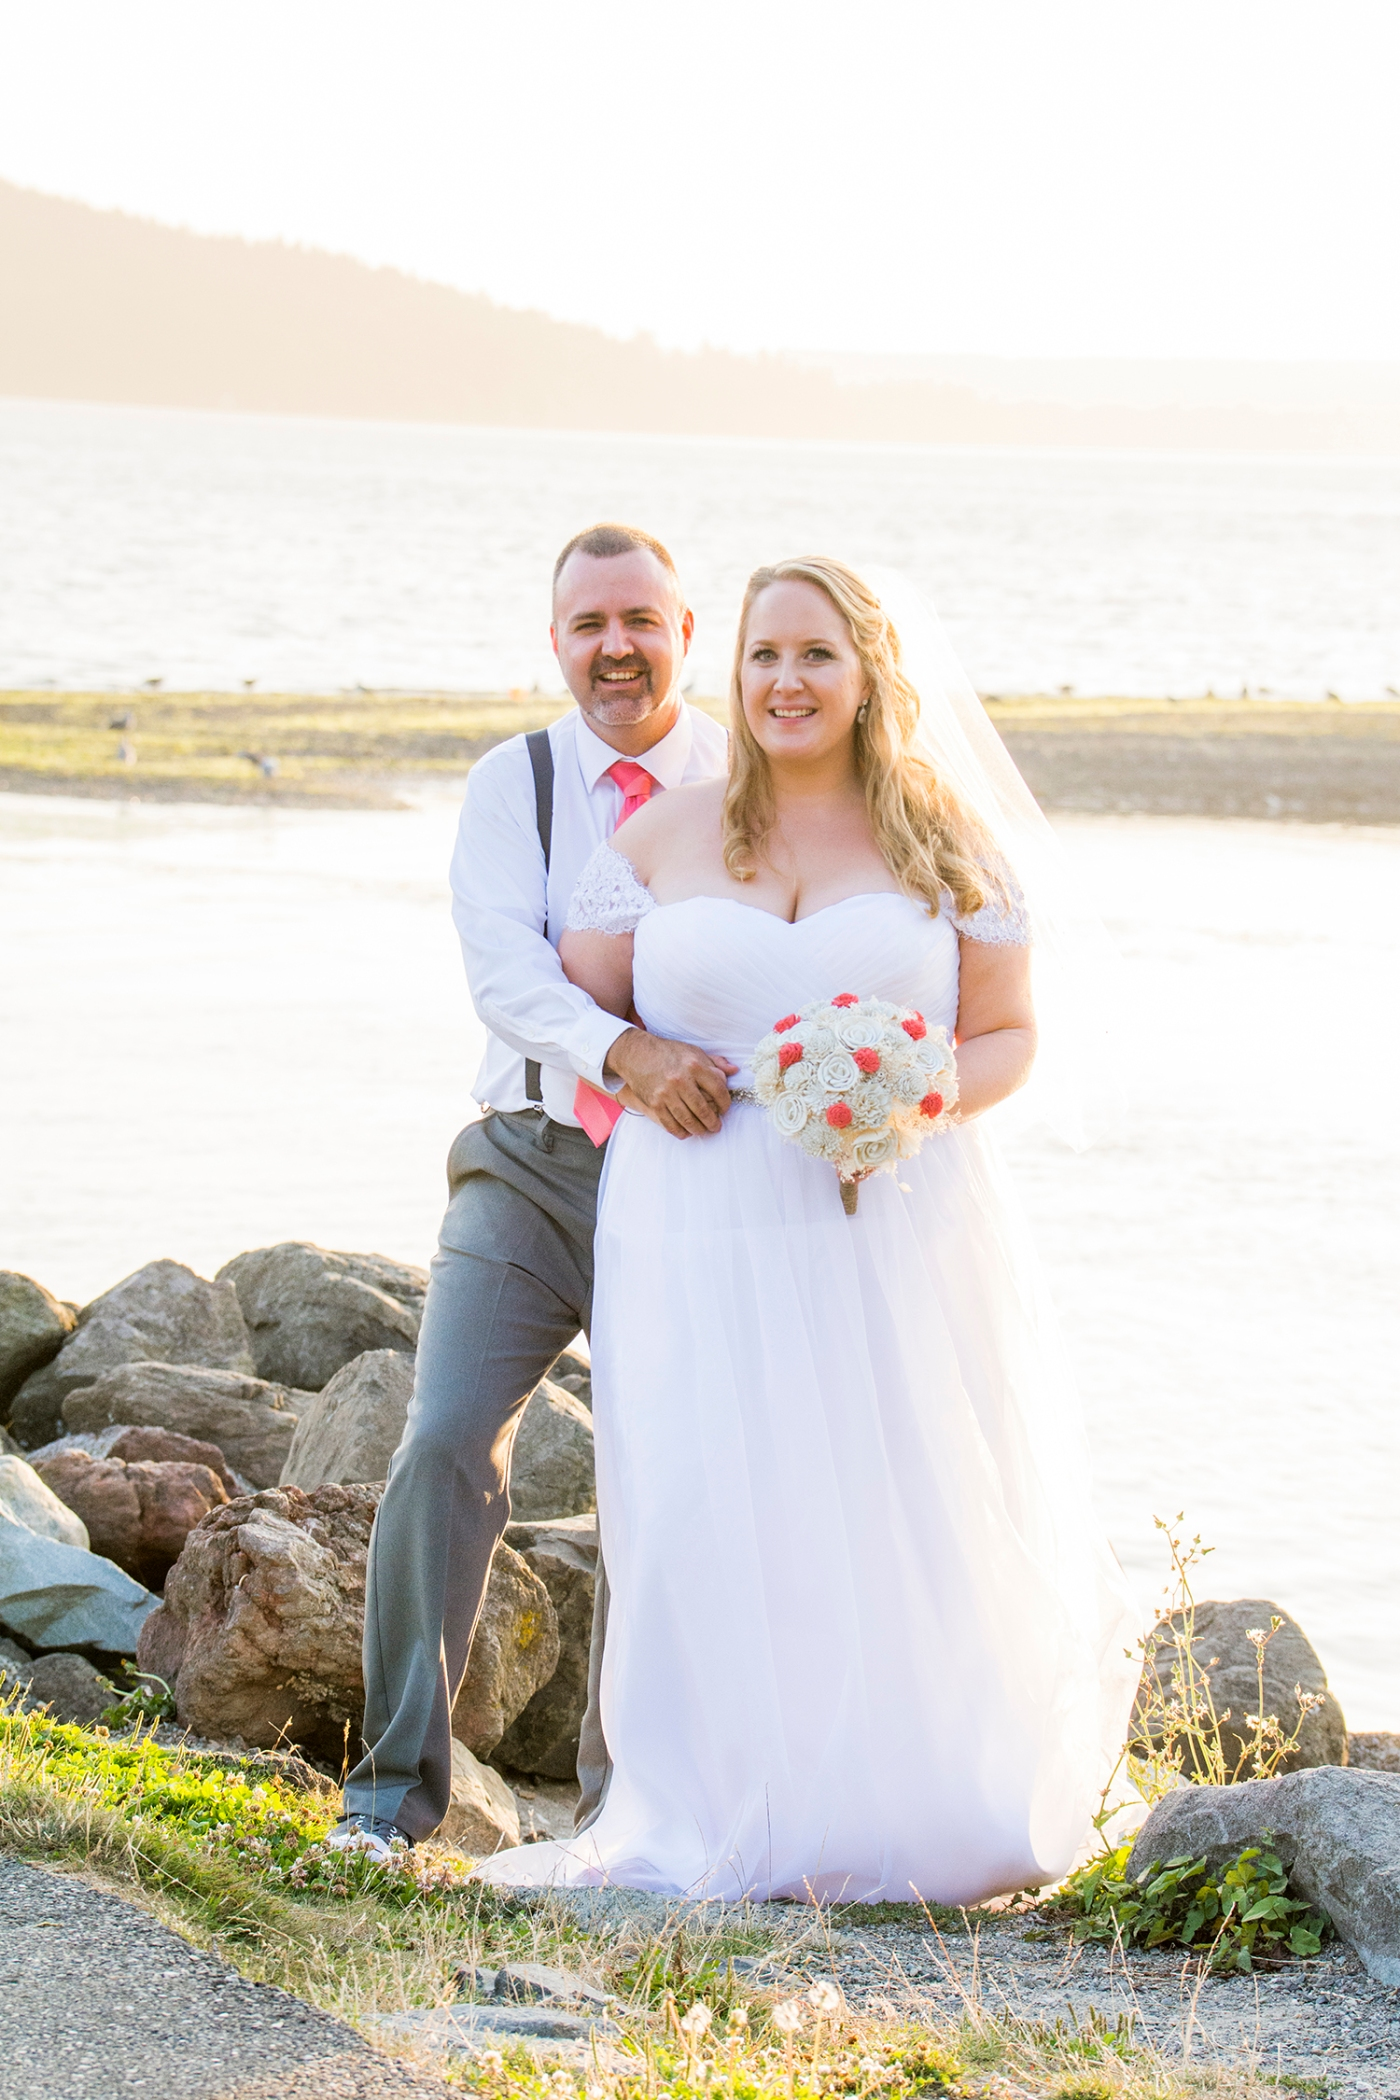 Jane_Speleers_Photography_Seattle_Wedding_waterfront_NW_JS7_9494-2